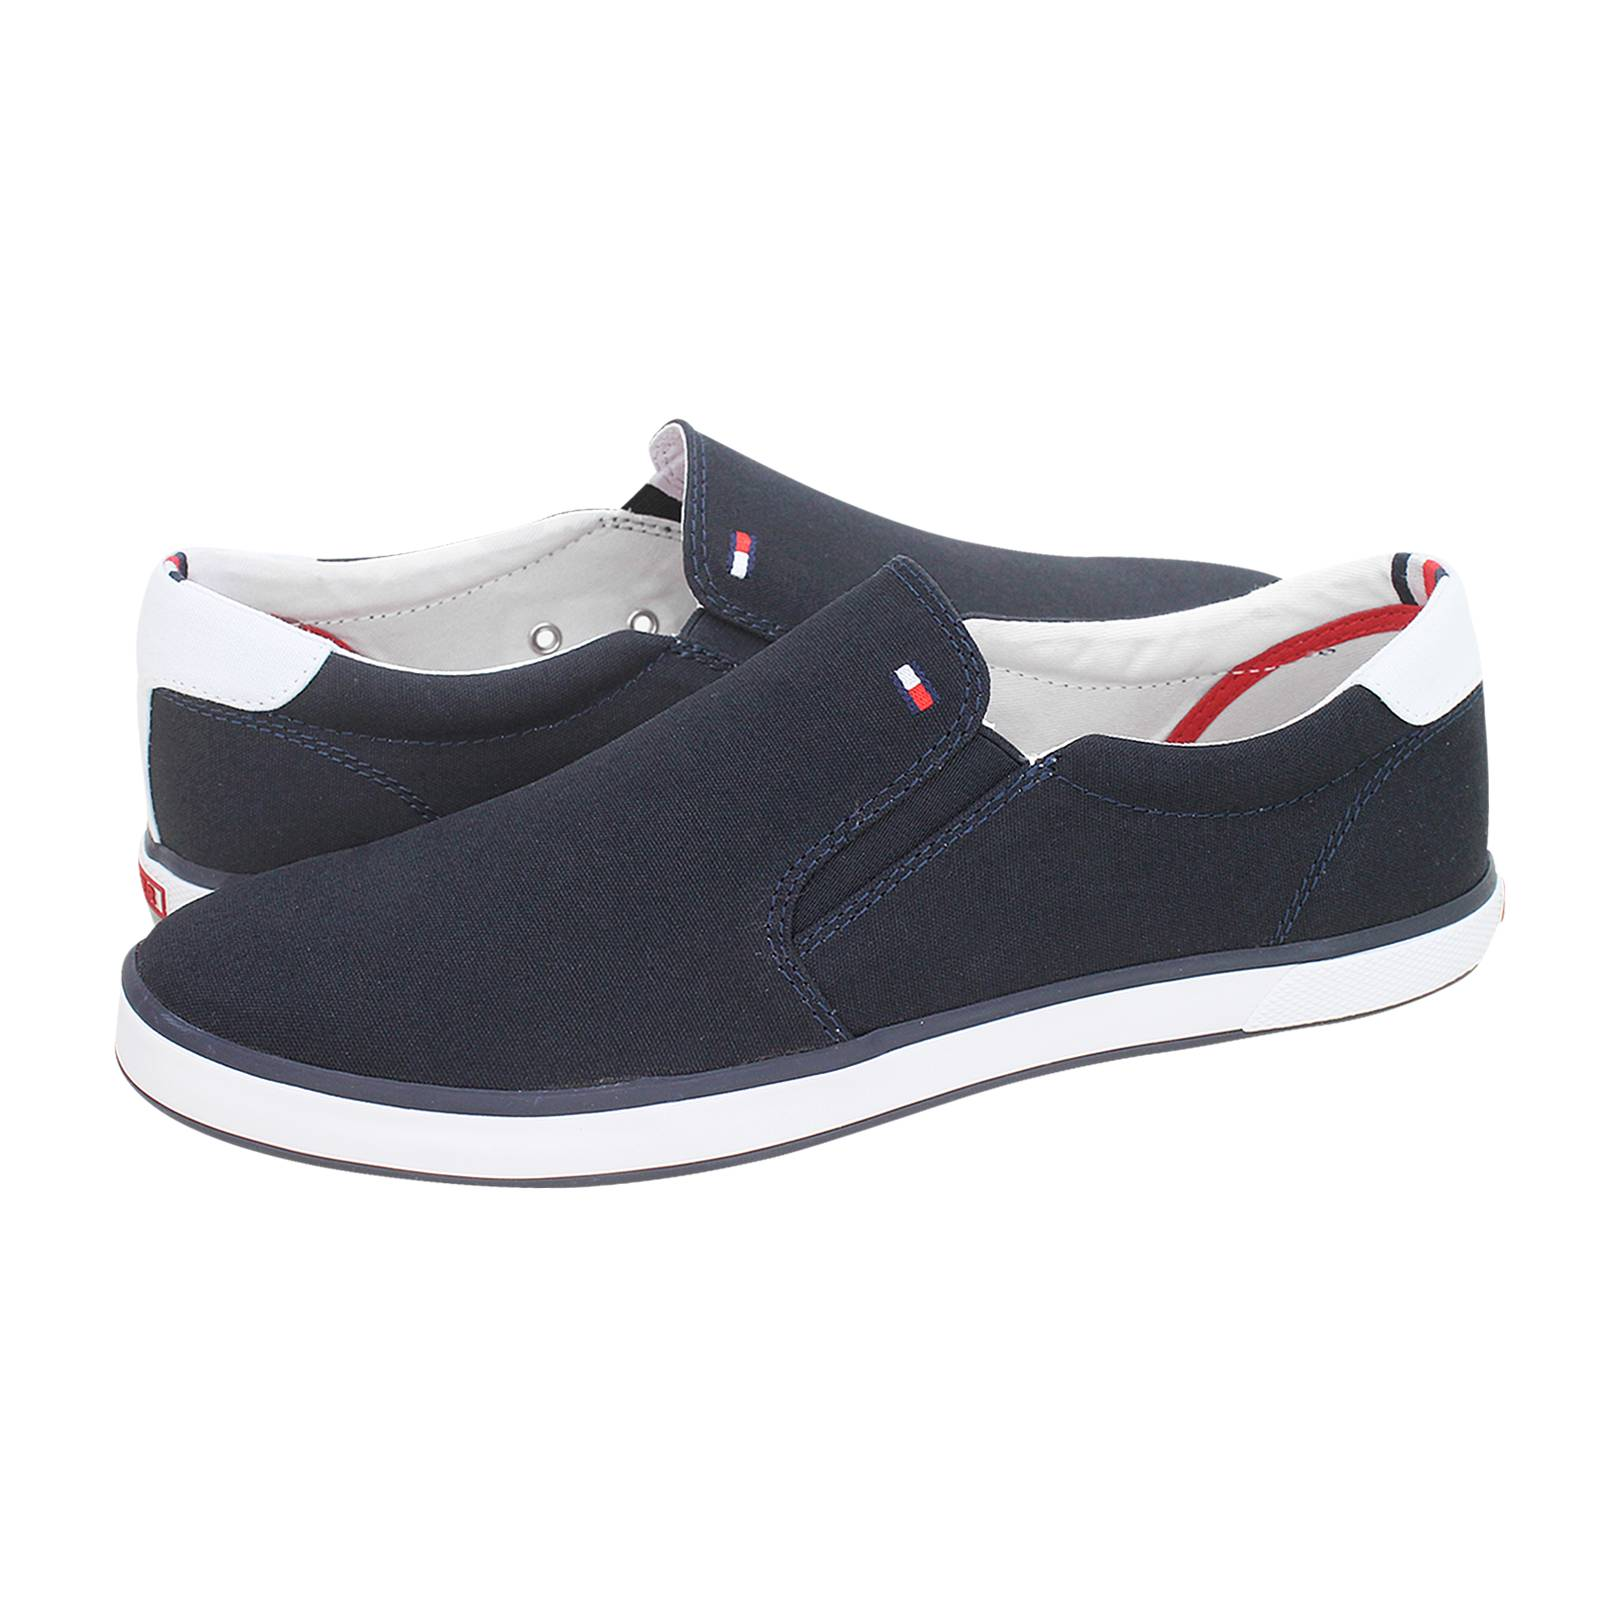 c03654d78 Tommy Hilfiger Iconic Slip On Sneaker casual shoes. Iconic Slip On Sneaker